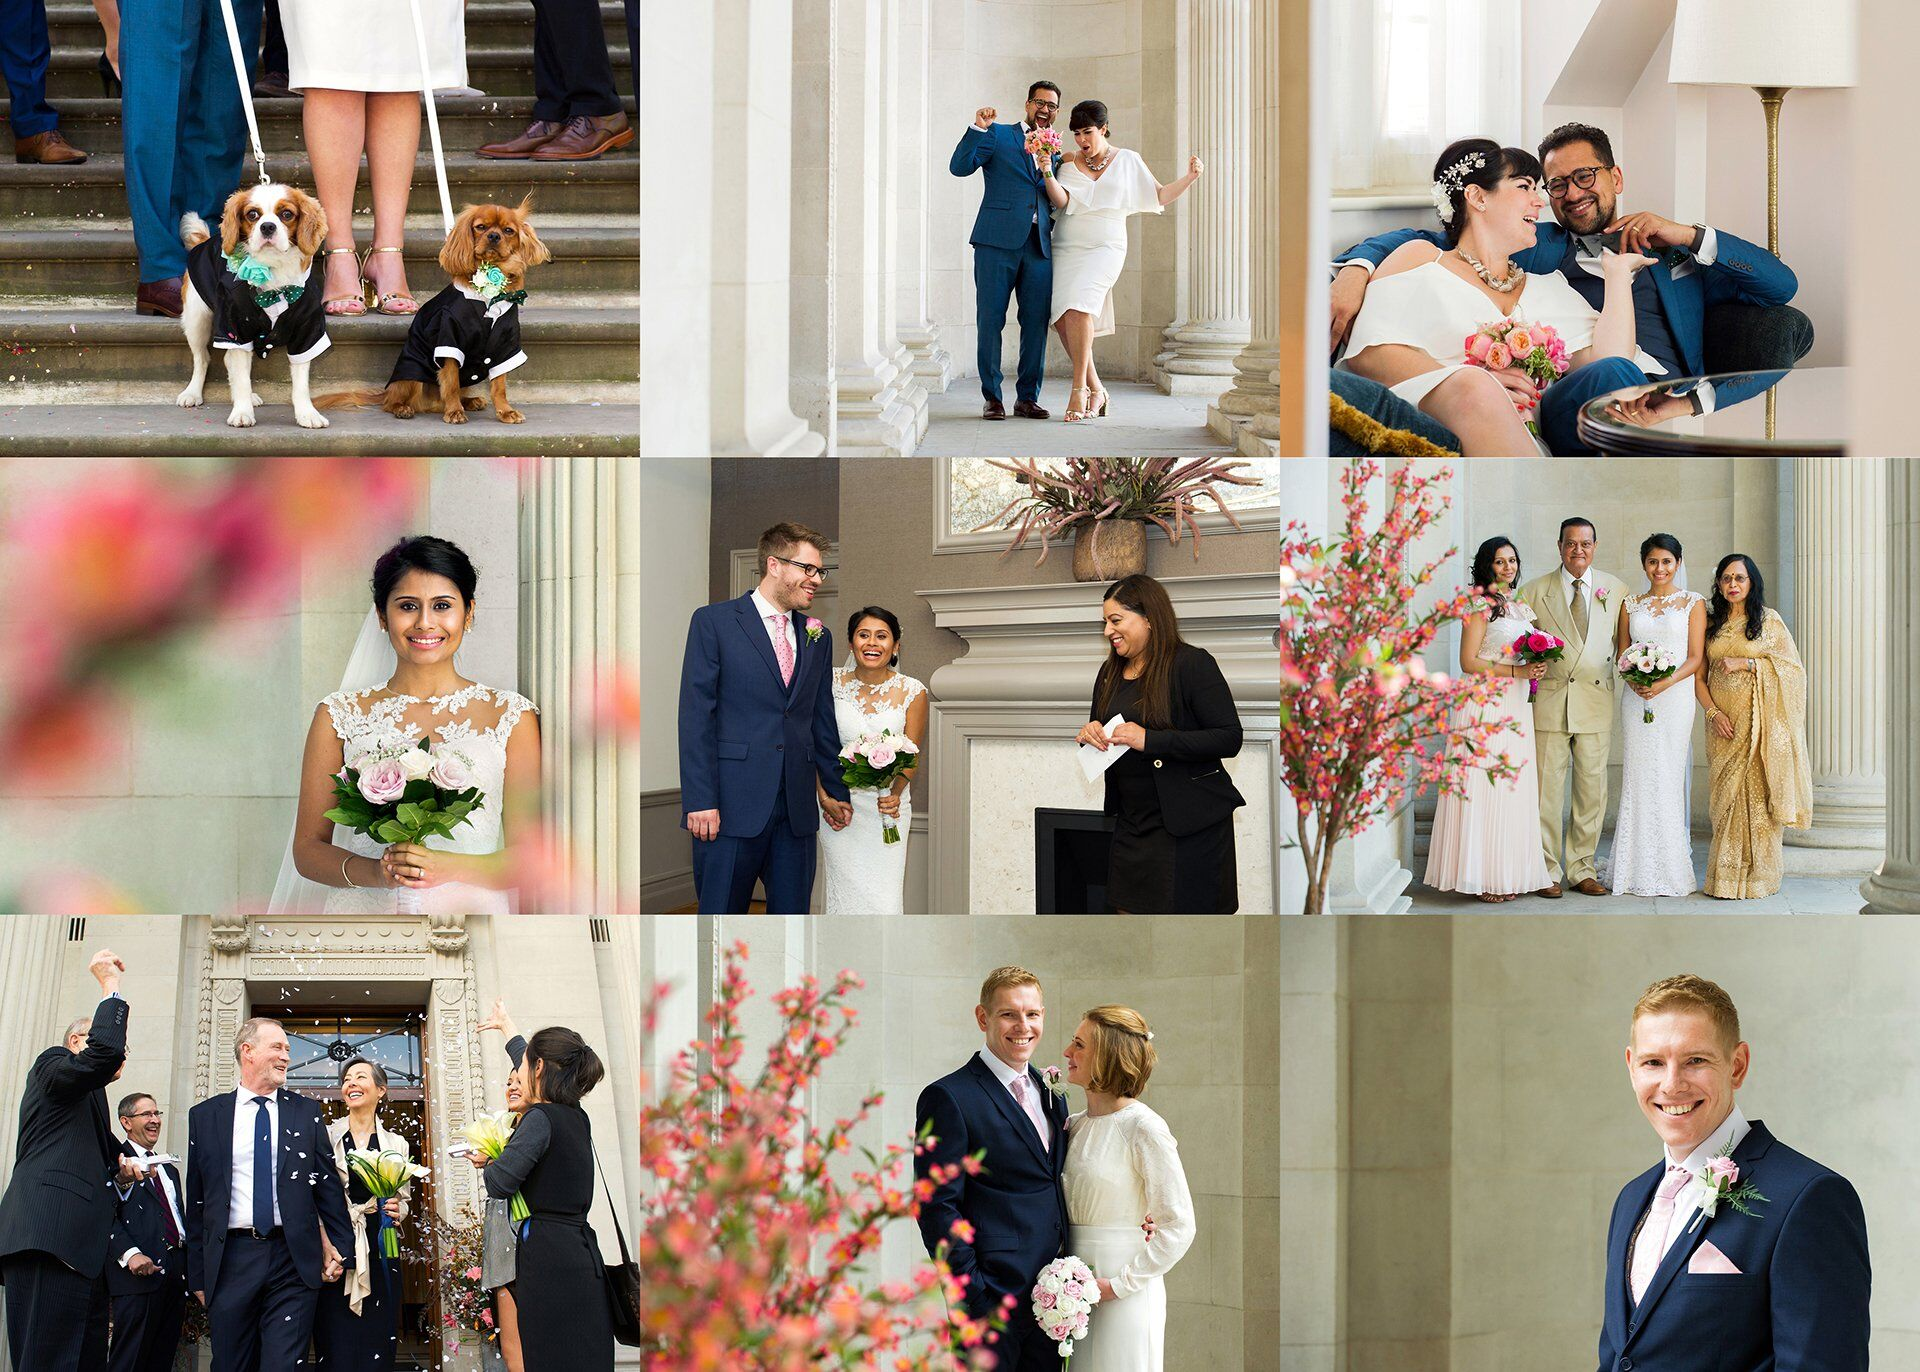 Wedding Photographer Spotlight Old Marylebone Town Hall - Emma Duggan Photography (Westminster Register Office) - A set of nine wedding photographs depicting weddings photographed at Old Marylebone Town Hall by Emma Duggan Photography in Spring 2018 including two dogs as ring bearers, a couple celebrating under the fluted columns, a bride through the Spring flowers outside the entrance, a Mayfair Room ceremony, a family group, confetti after a Pimlico ceremony, and a smiling groom